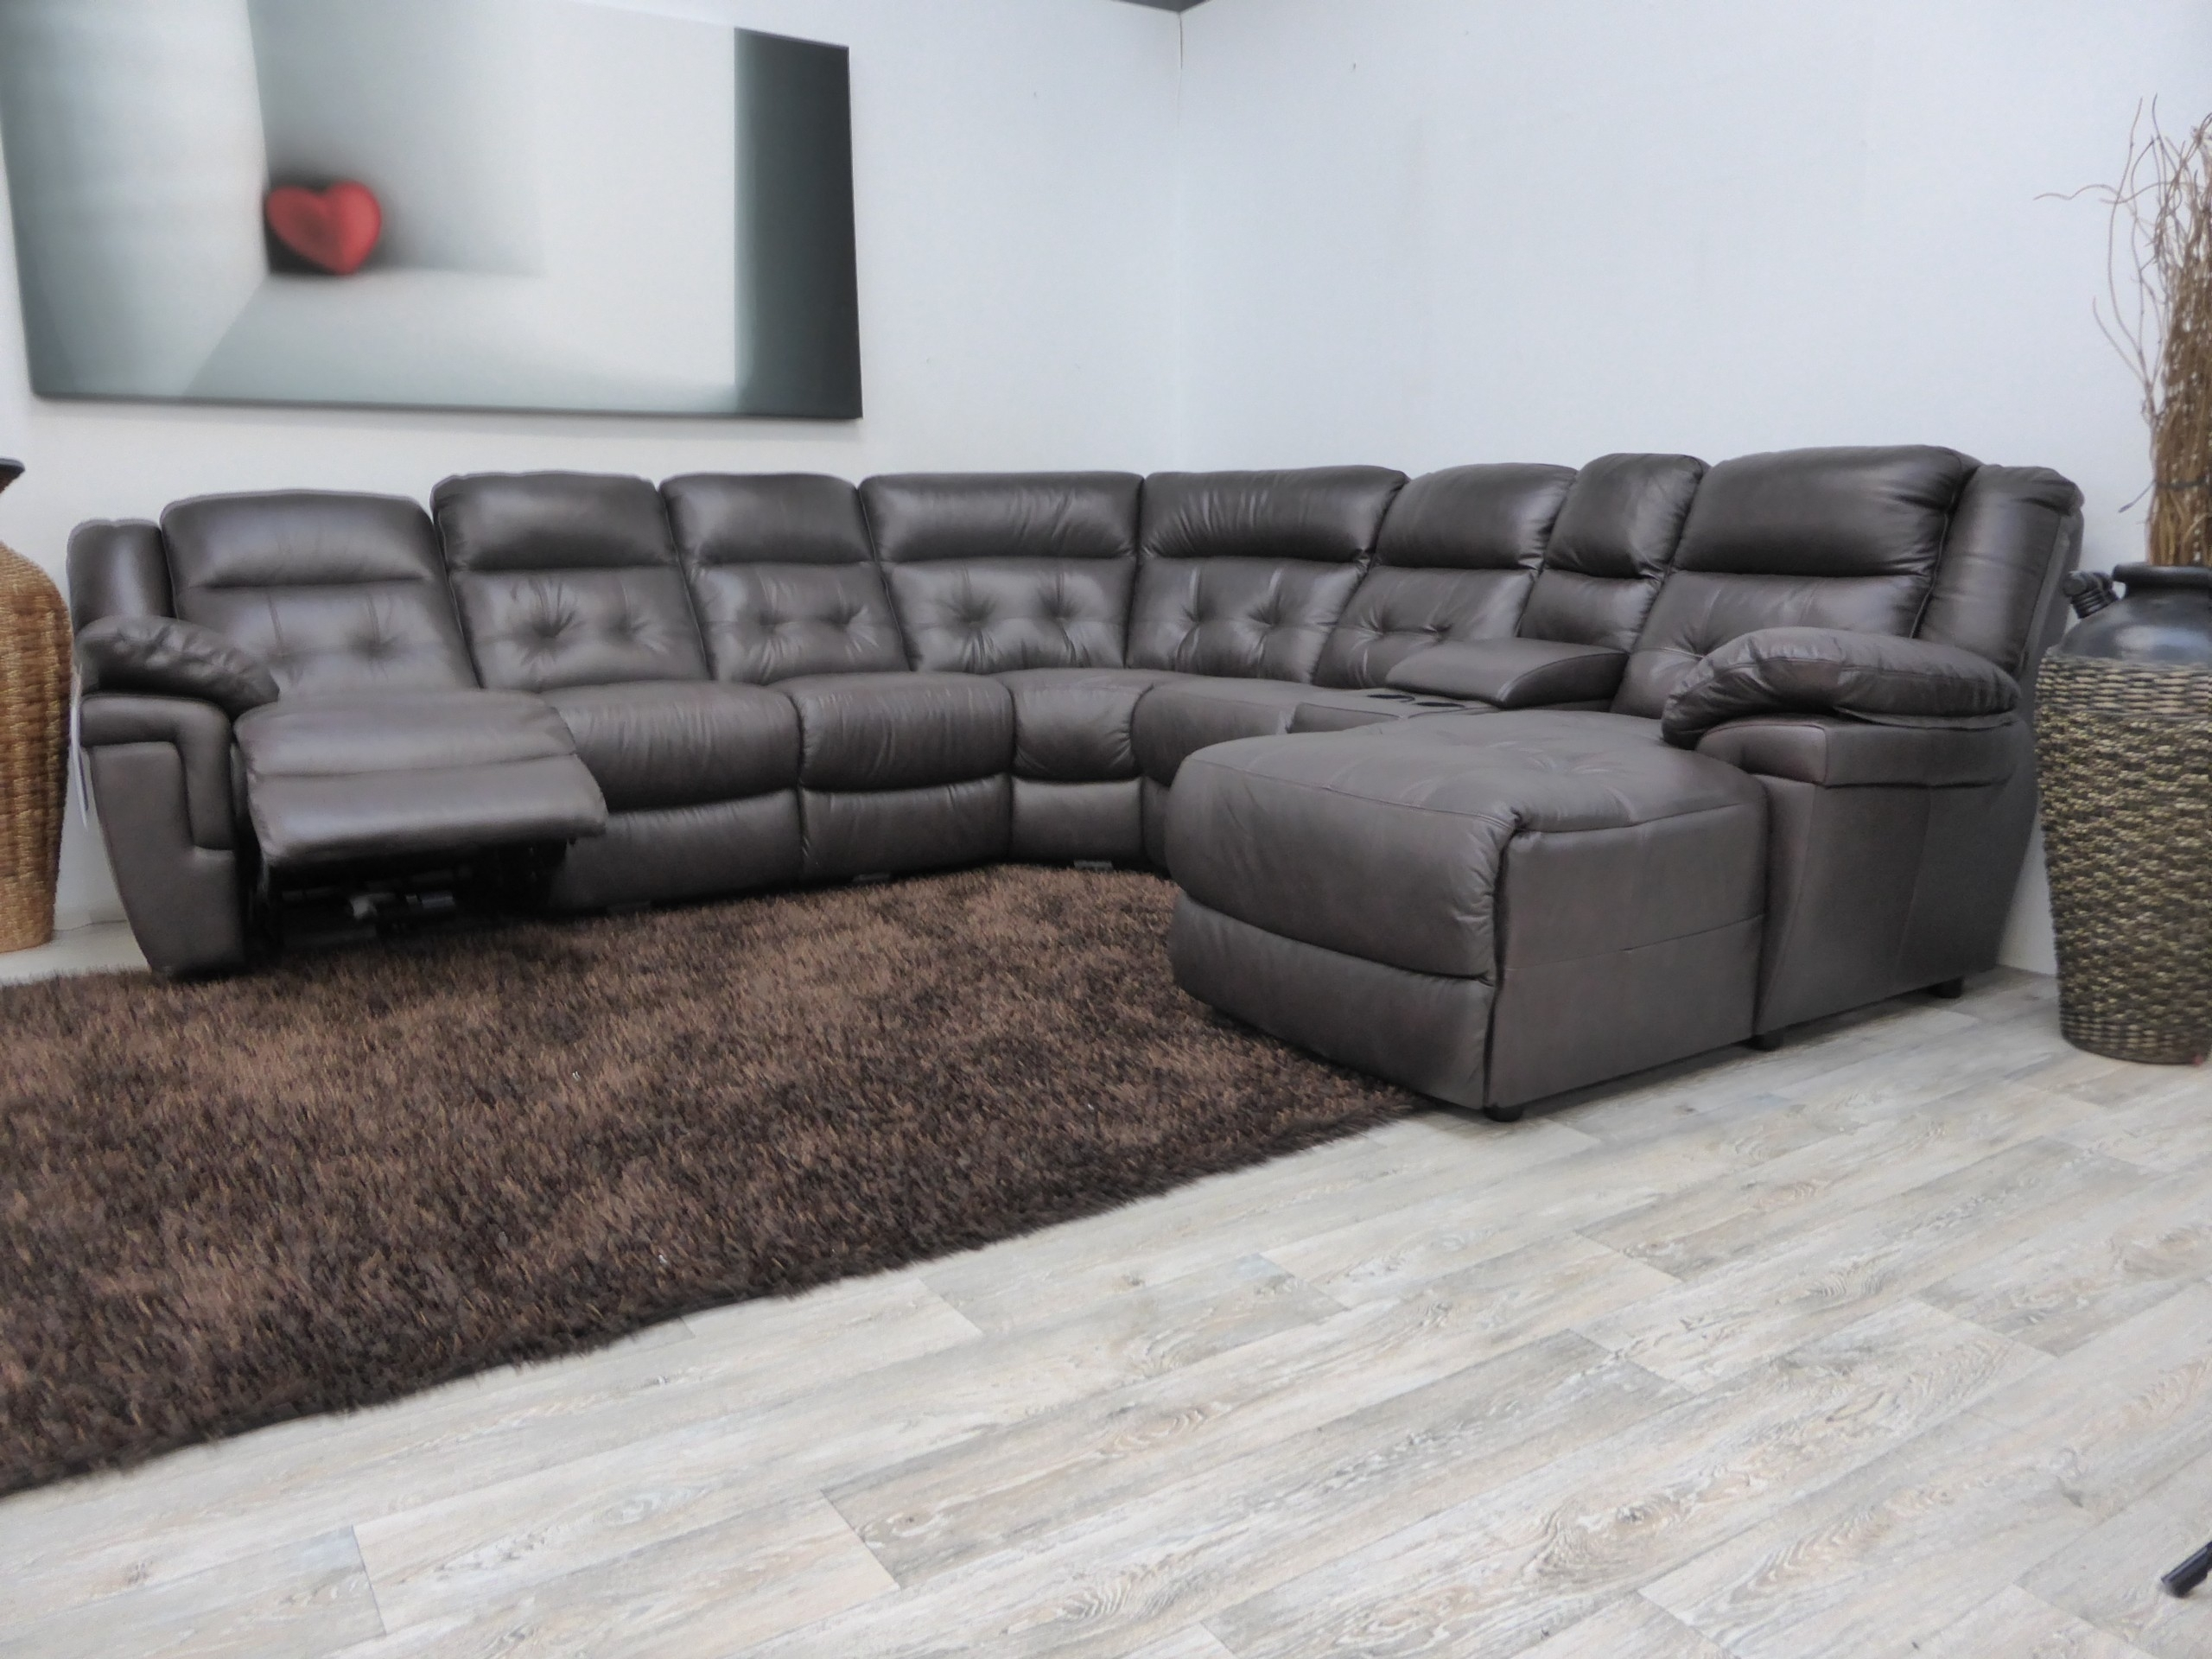 Popular Photo of Craigslist Sectional Sofa